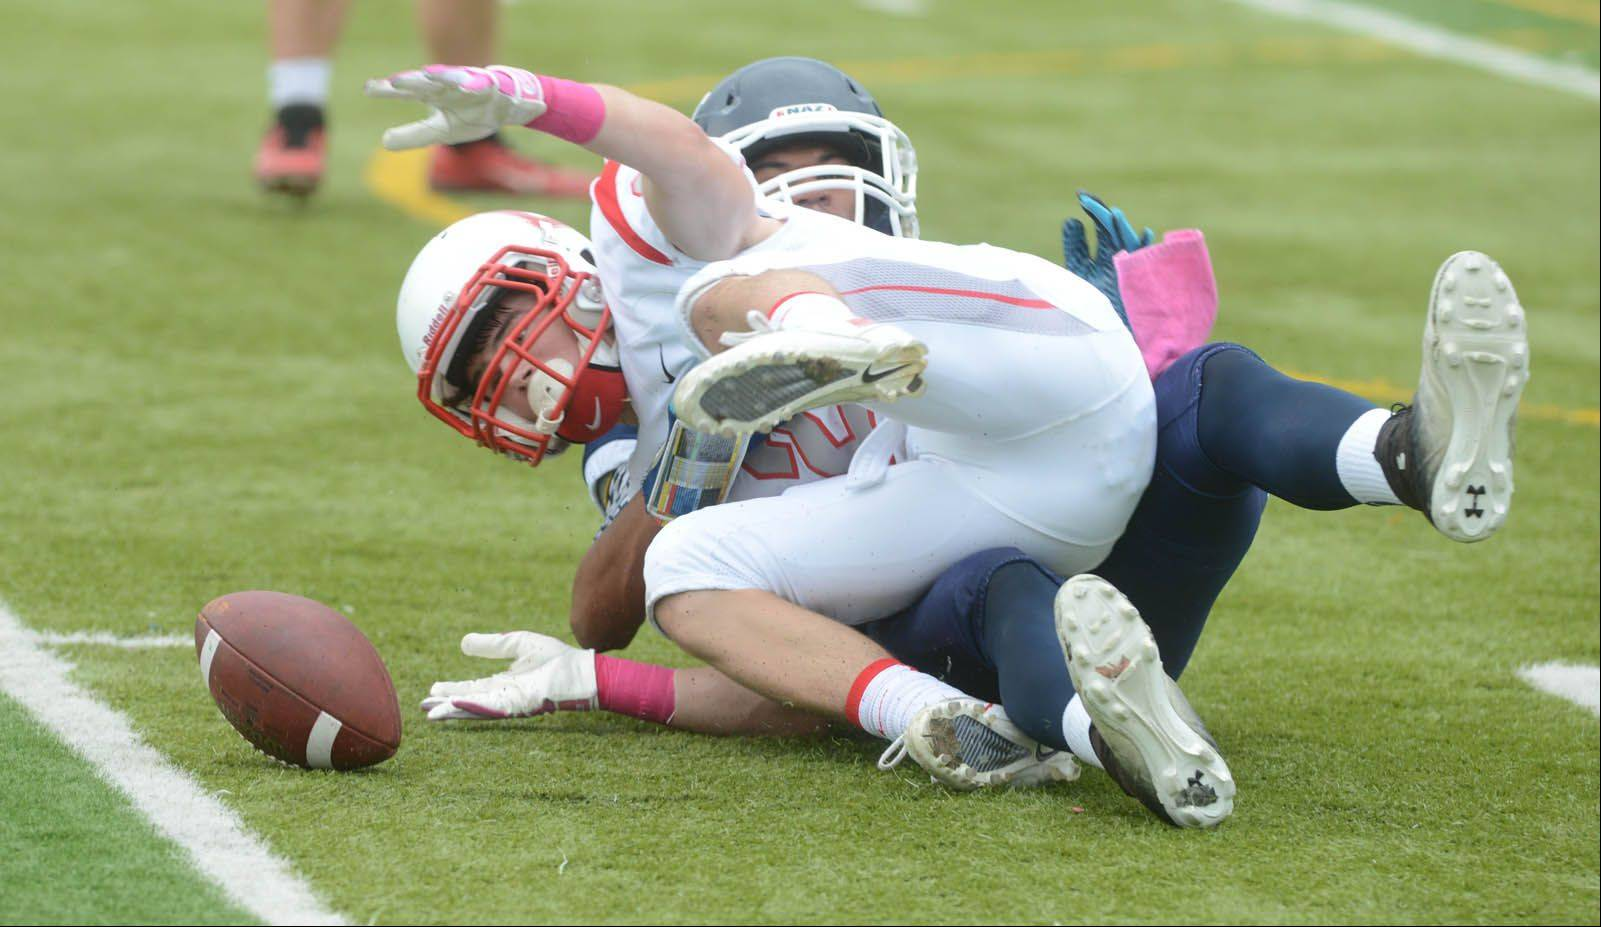 Brad Sznajder of Benet is pulled down by a defender during the Benet at Nazareth football game Saturday. He dropped the ball upon impact.